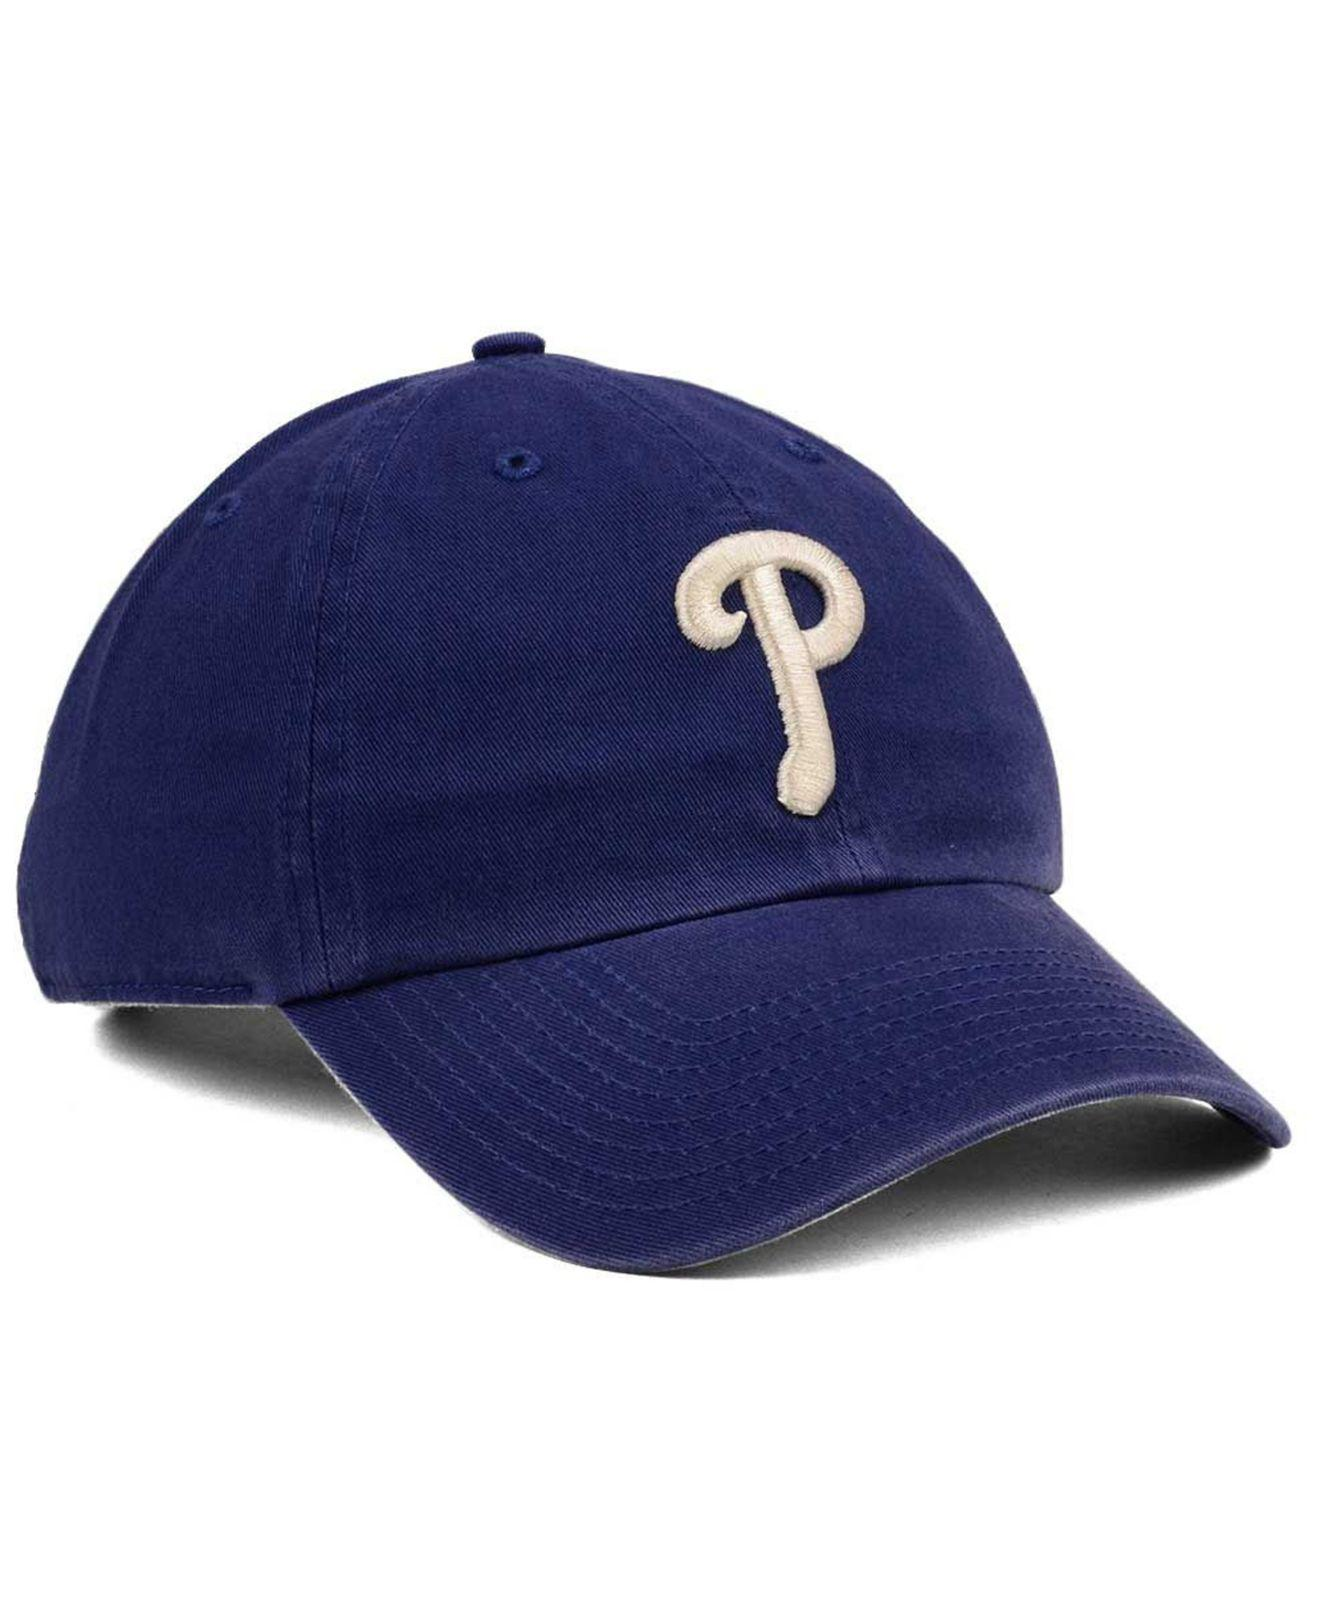 3a115aecd65 Lyst - 47 Brand Philadelphia Phillies Timber Blue Clean Up Cap in ...